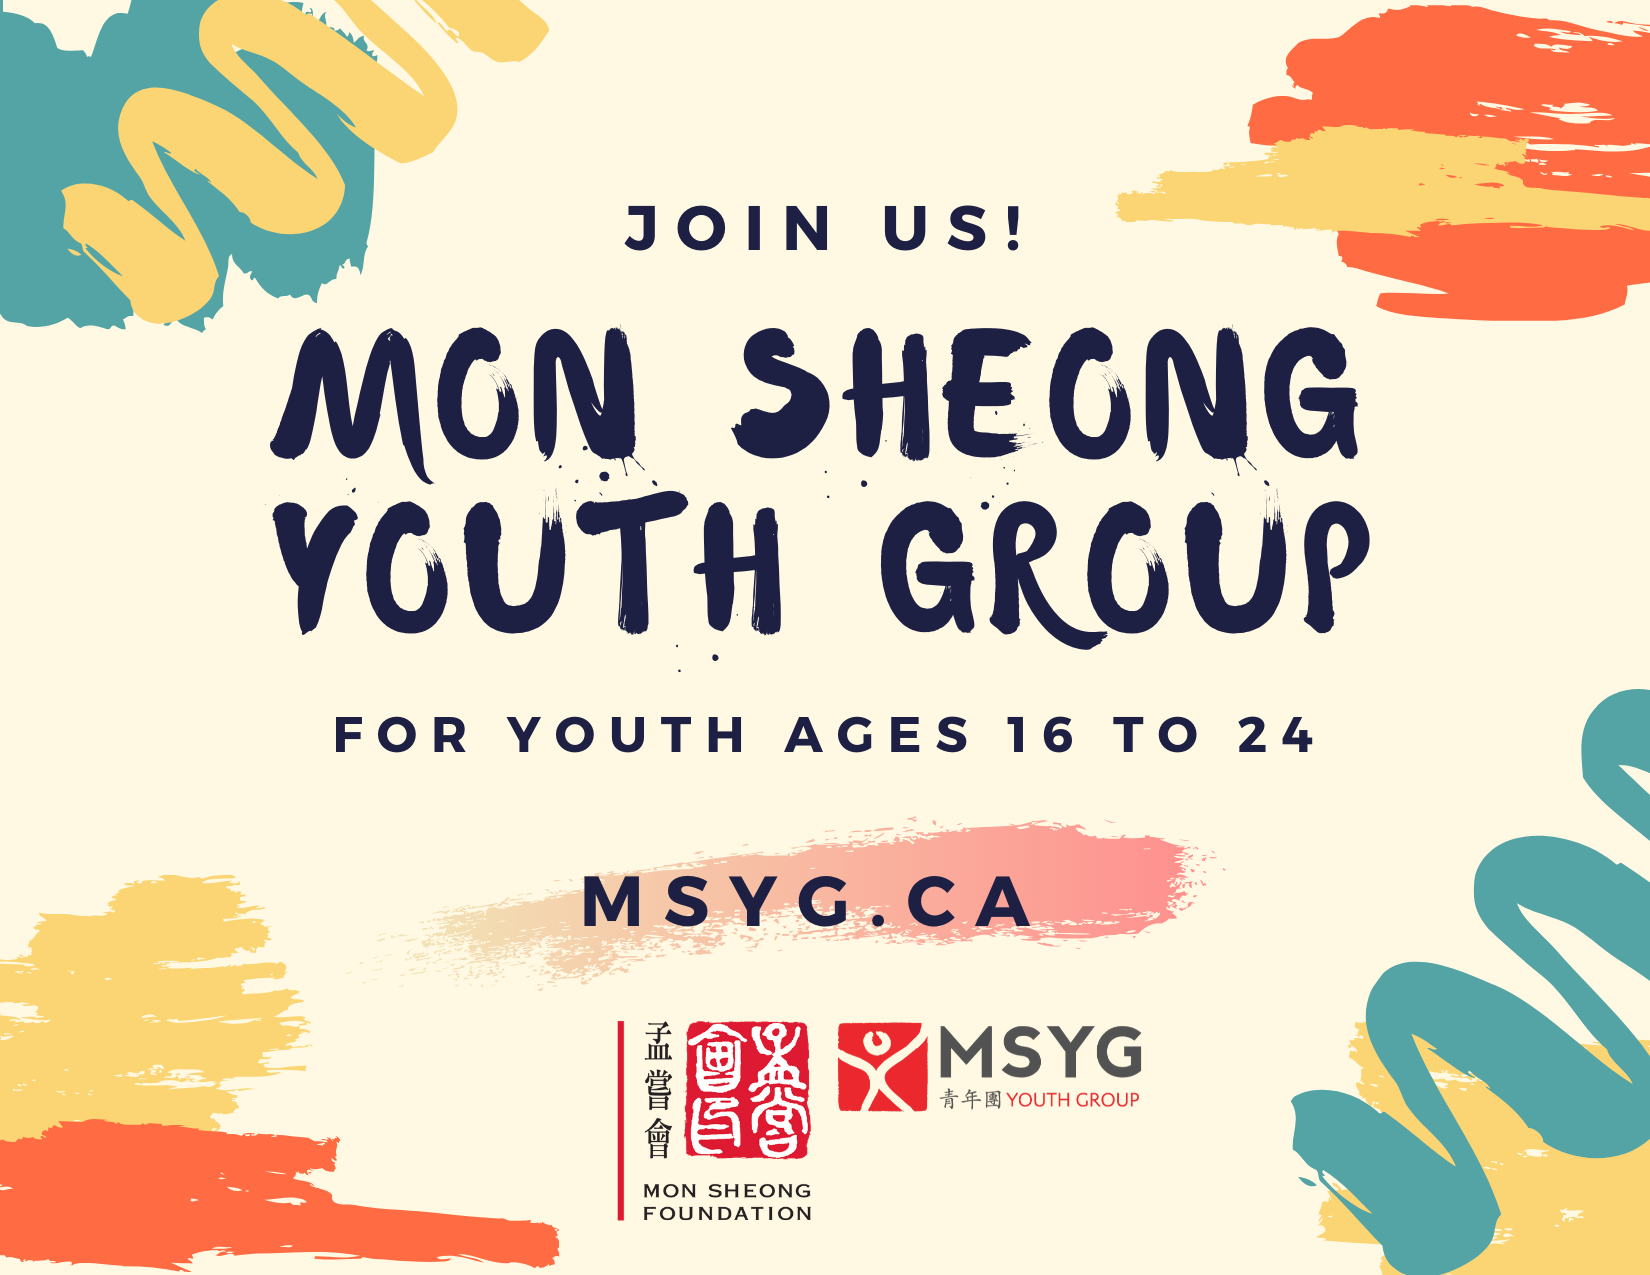 Join us! Mon Sheong Youth Group for youth ages 16 to 24